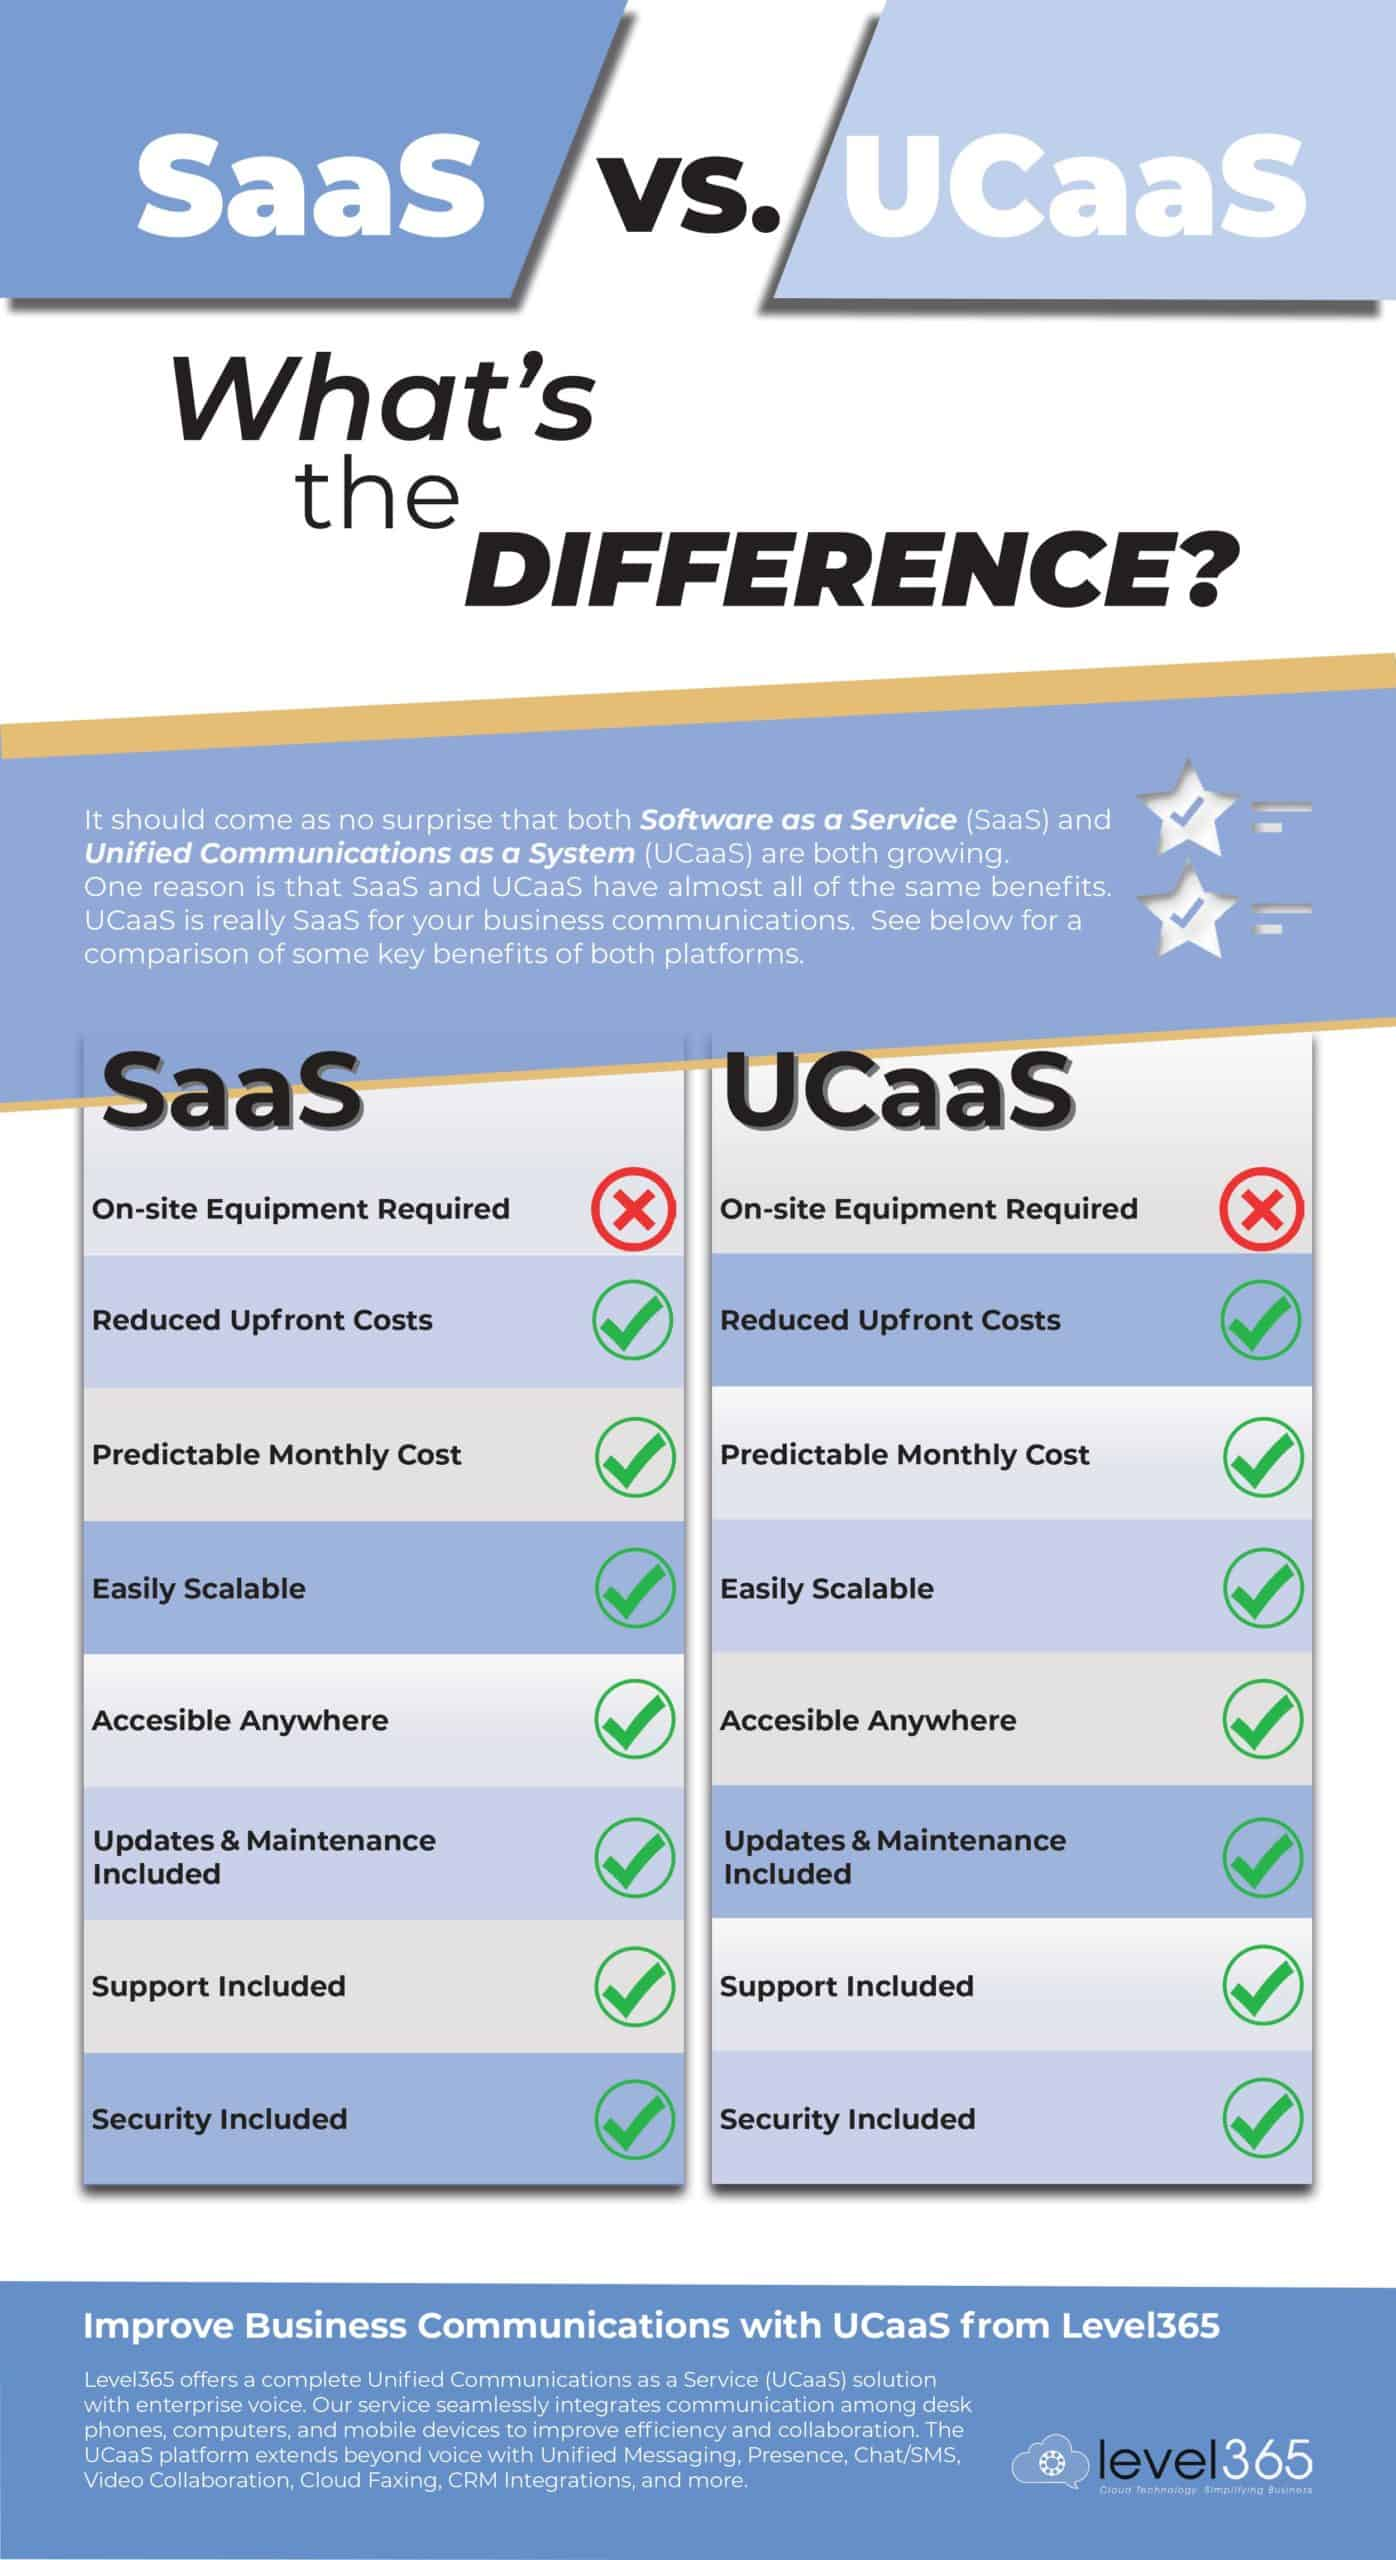 Infographic-SaaS-vs-UCaas-Benefits-FINAL-jpg_Jun3020-scaled.jpg